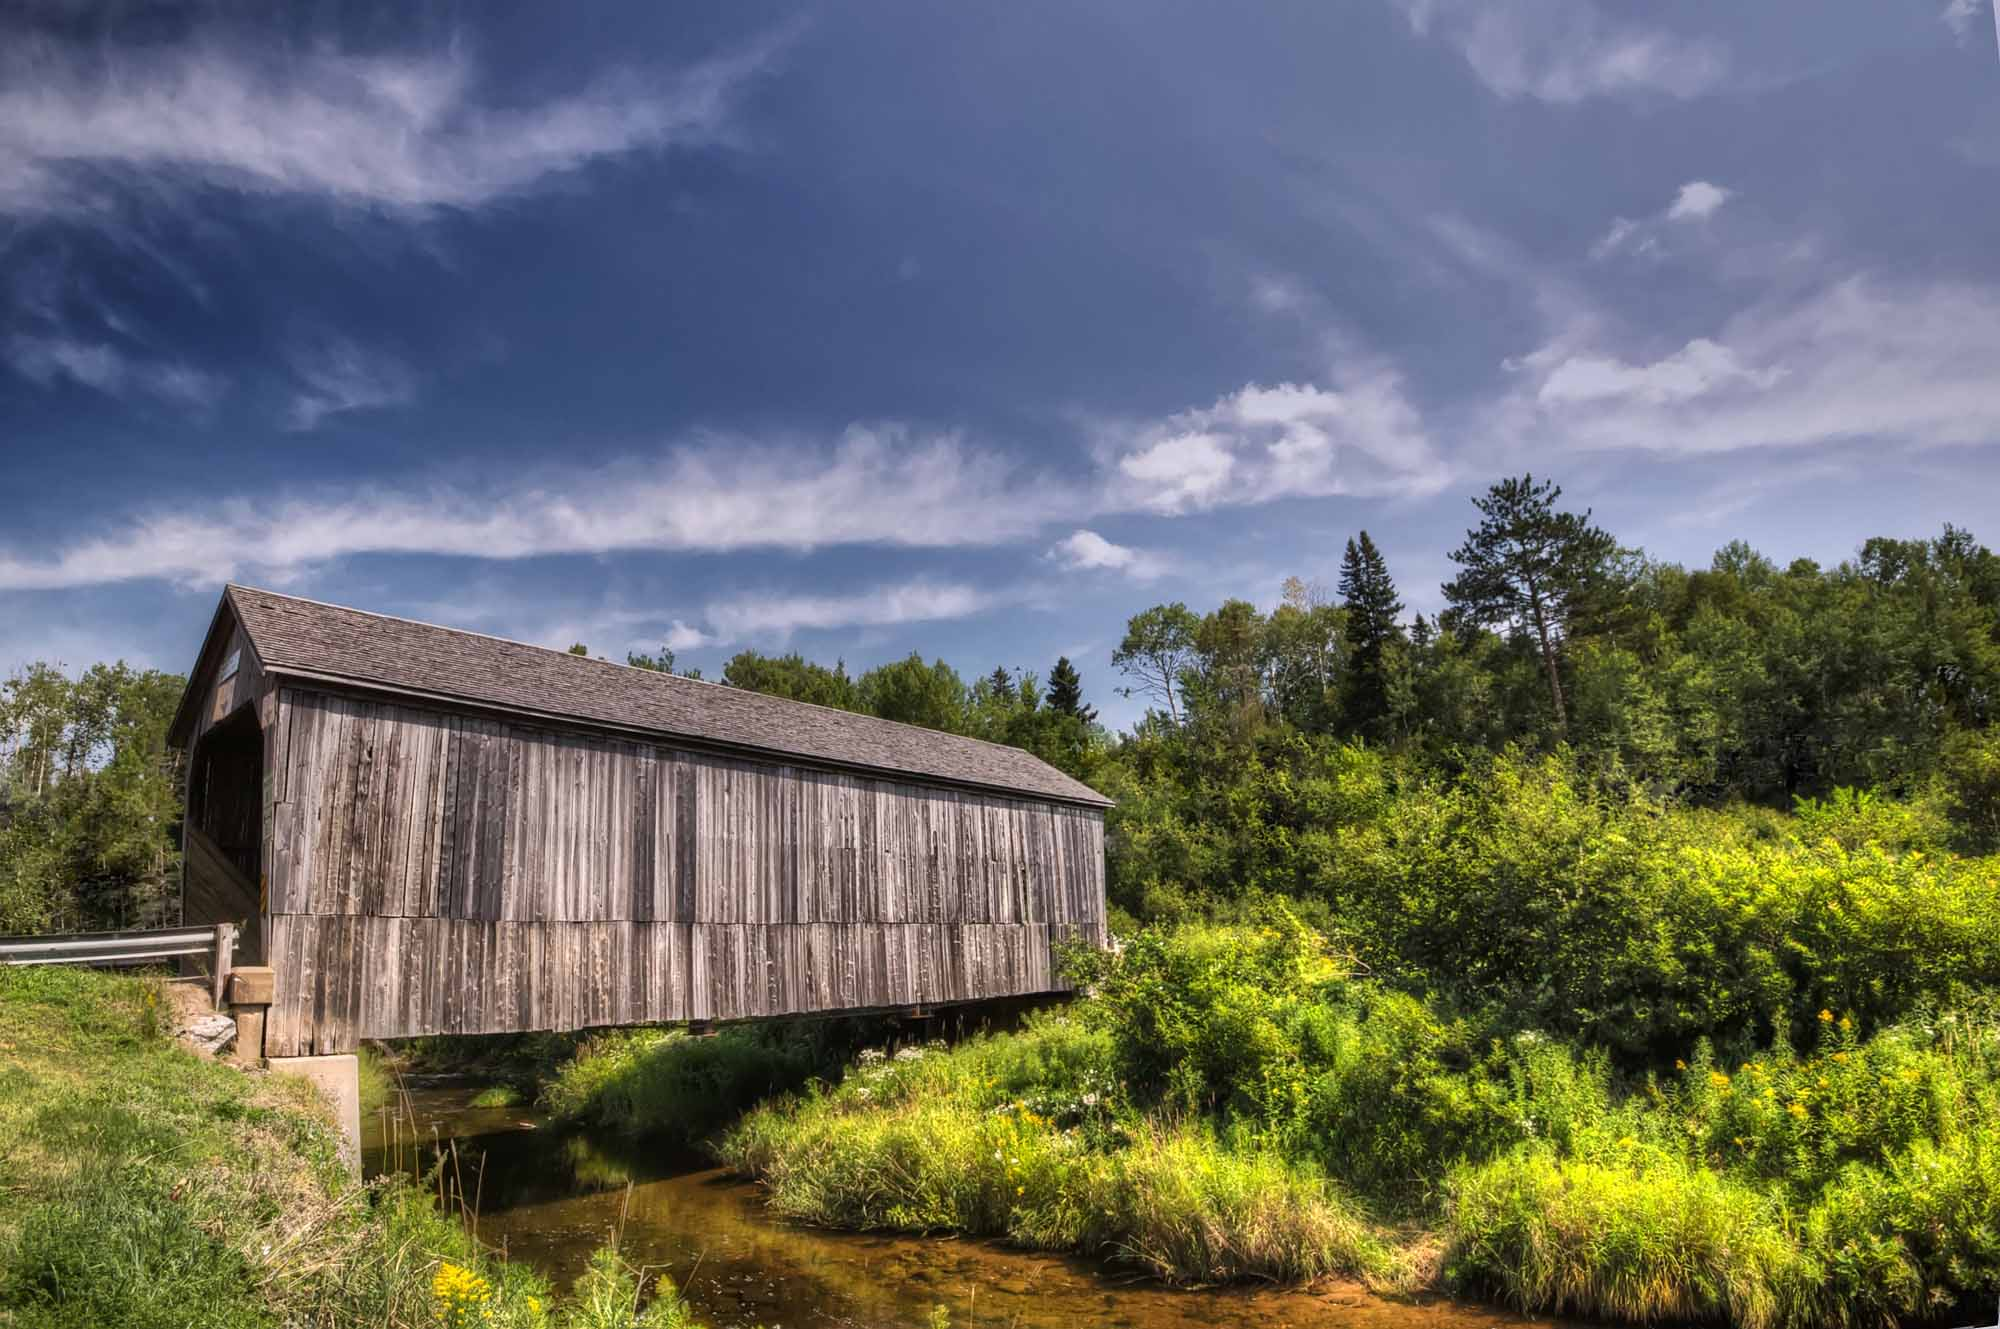 Covered Bridge, New Brunswick